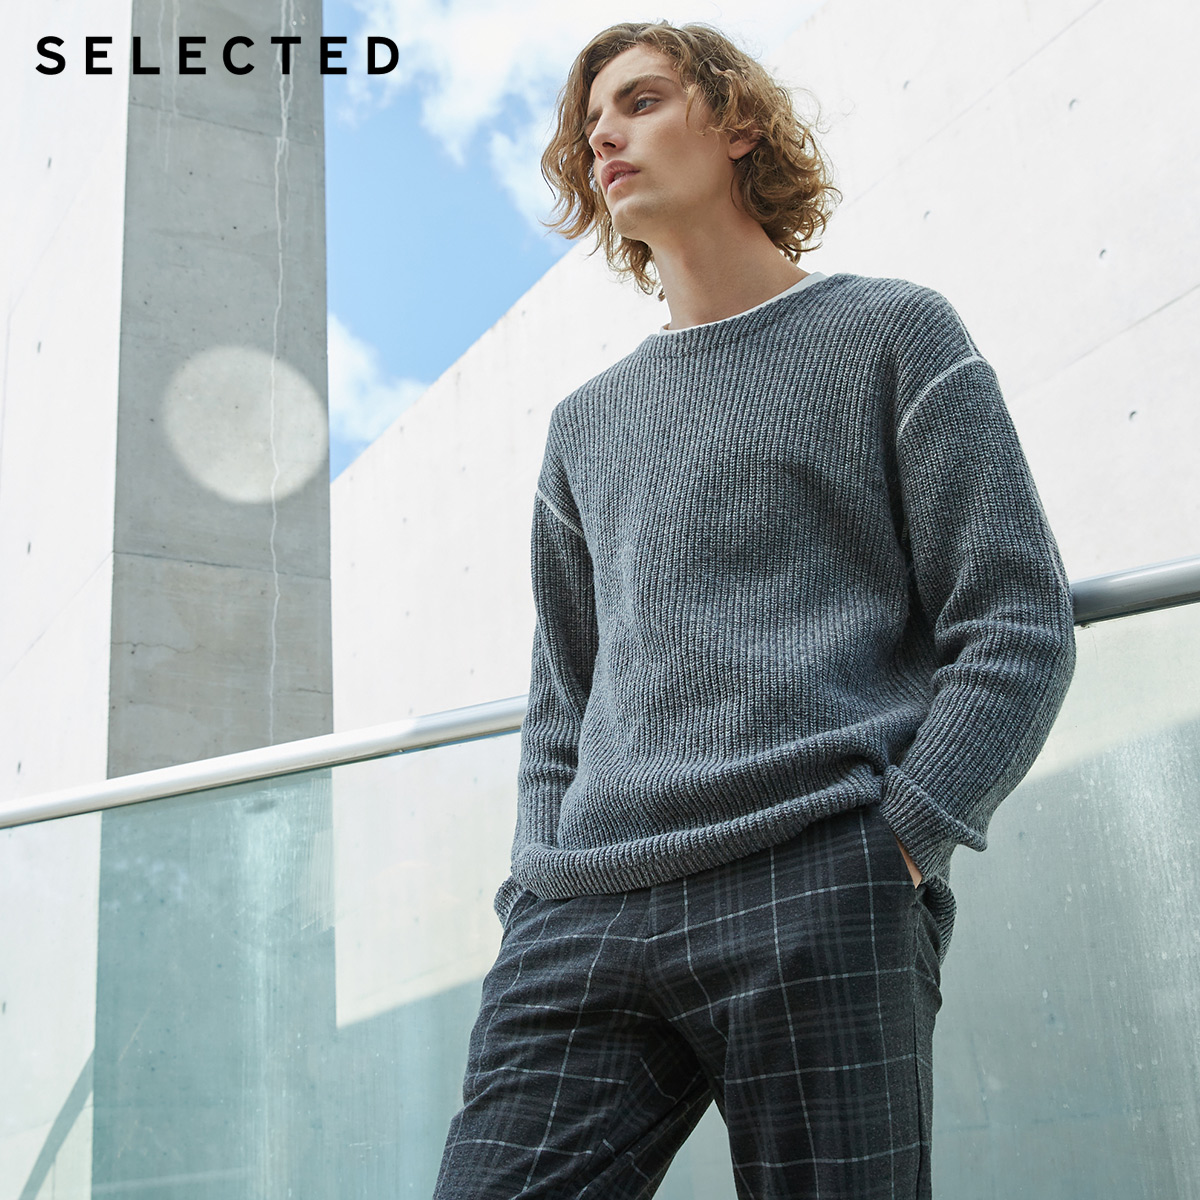 SELECTED Knitted Sweater Autumn Winter Men's Reverse-Stitches Contrasting S-418425530